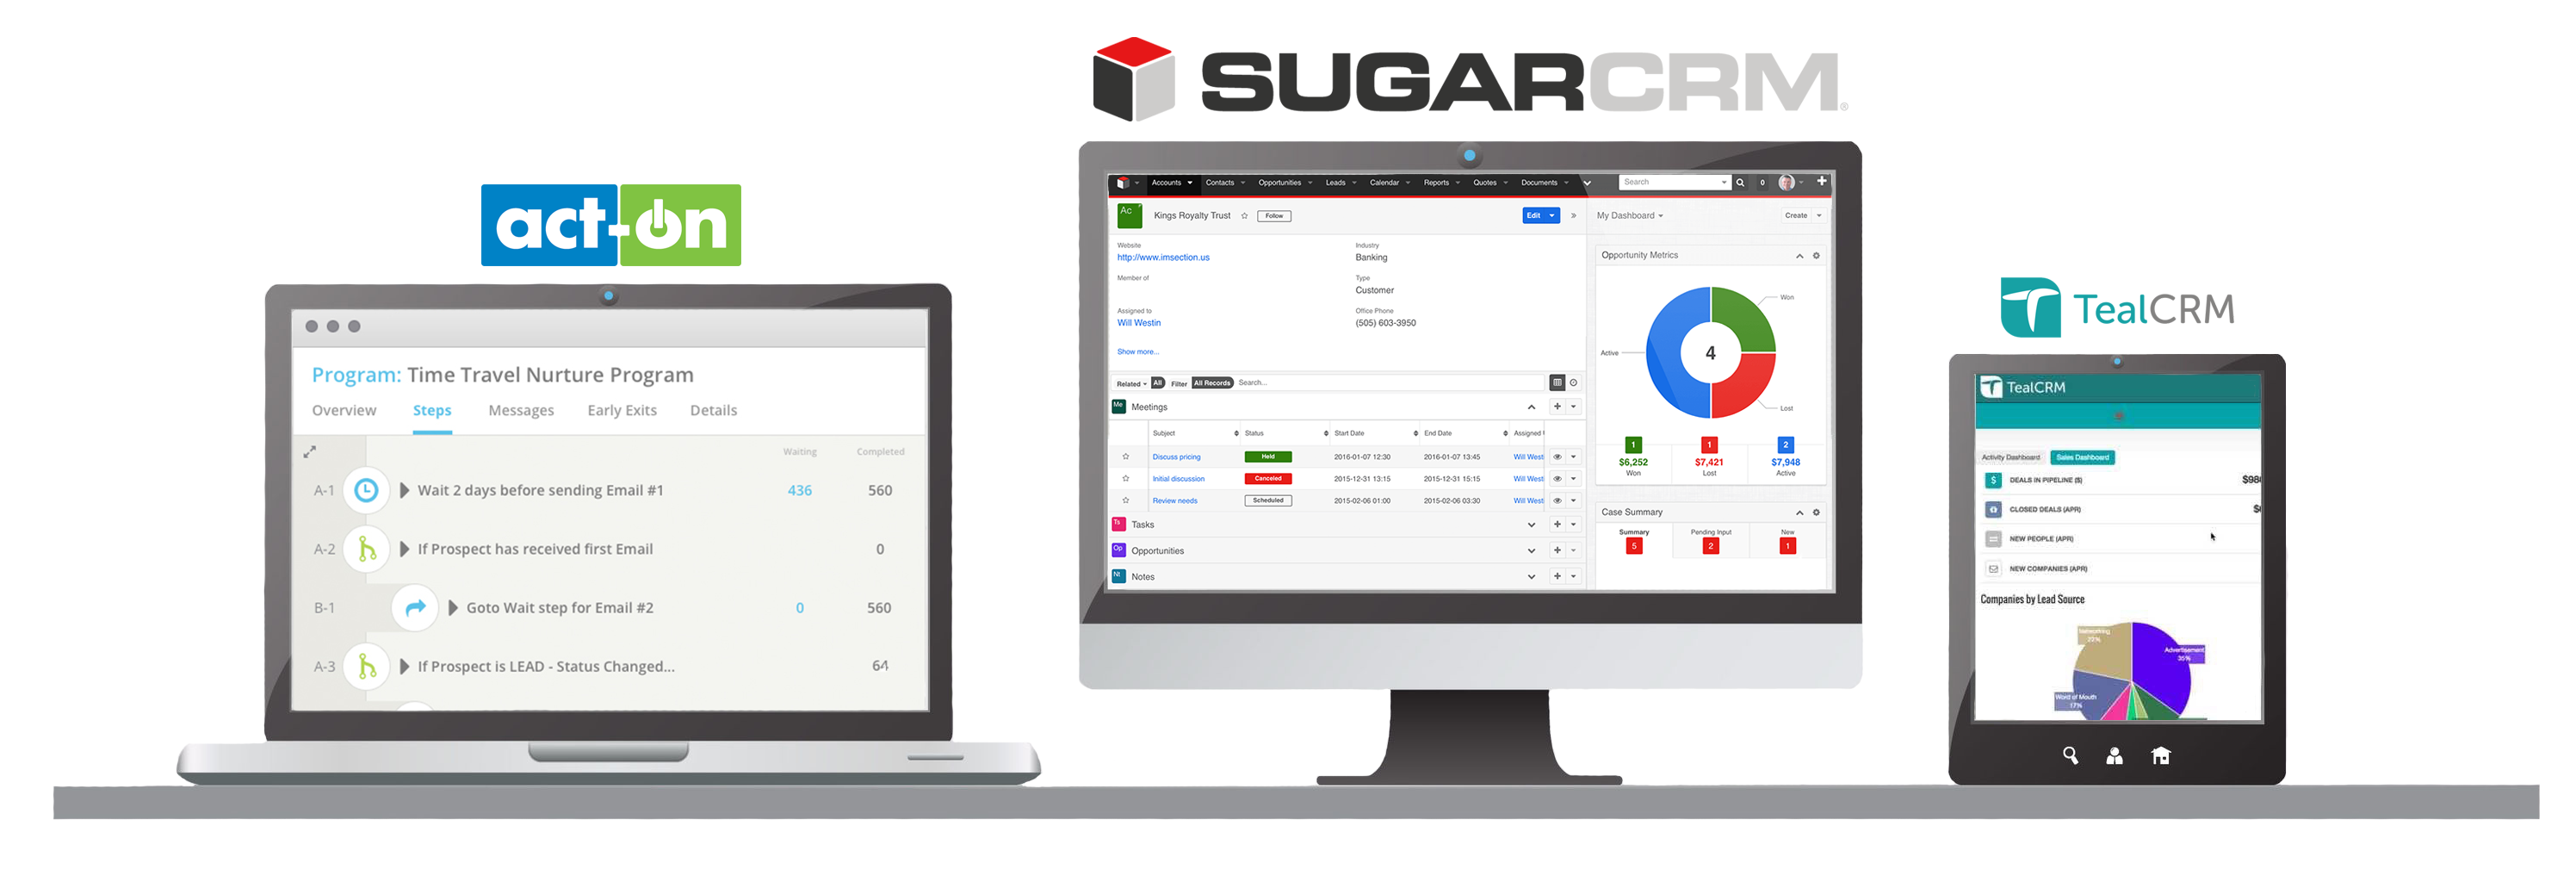 Eligeo CRM | SugarCRM | Act-On Marketing Automation | TealCRM